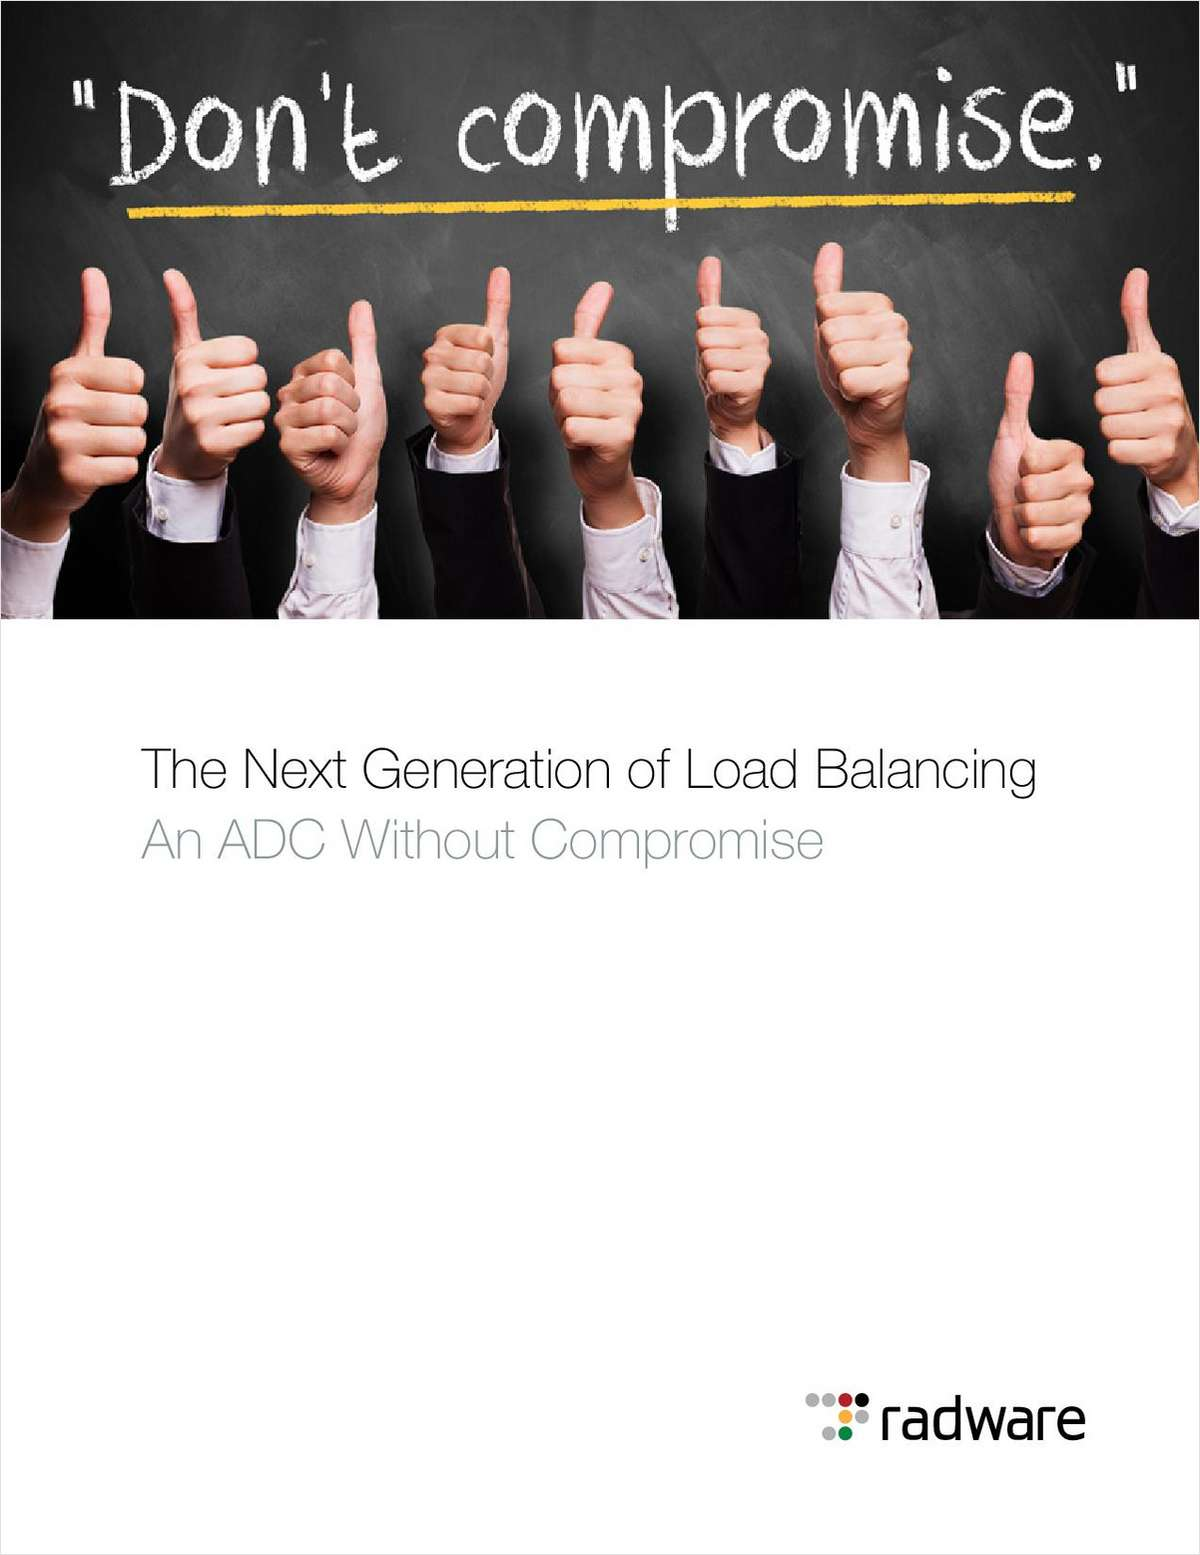 The Next Generation of Load Balancing An ADC Without Compromise